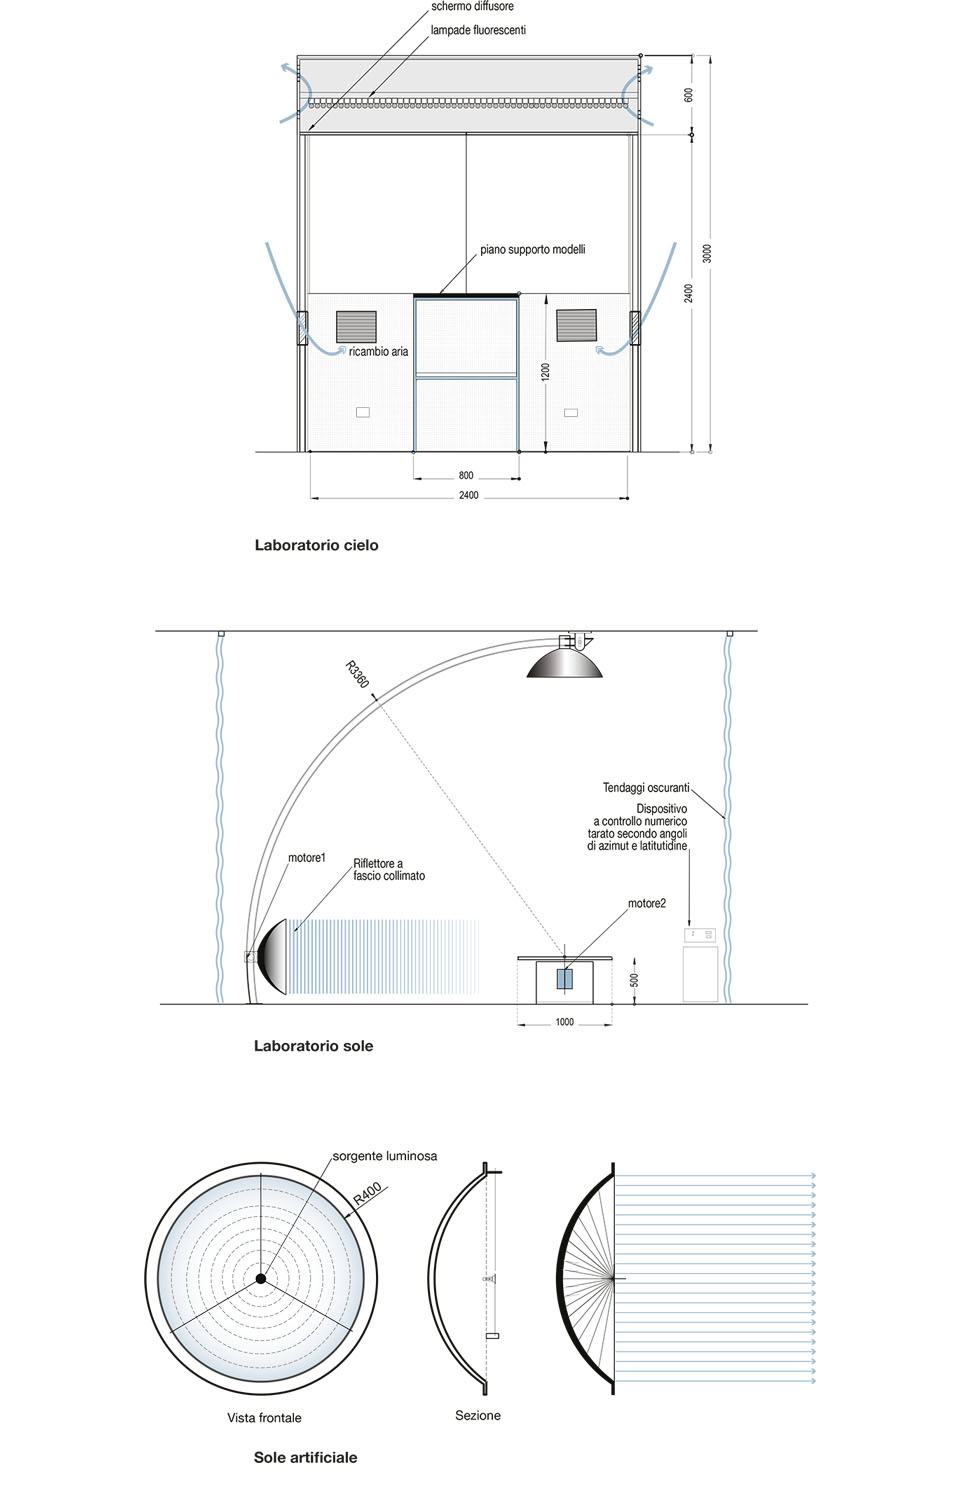 Main Archives Traverso Vighy Architetti Sustainable Architecture American Standard Heritage 10 Heat Pump Wiring Diagram Photo Credits